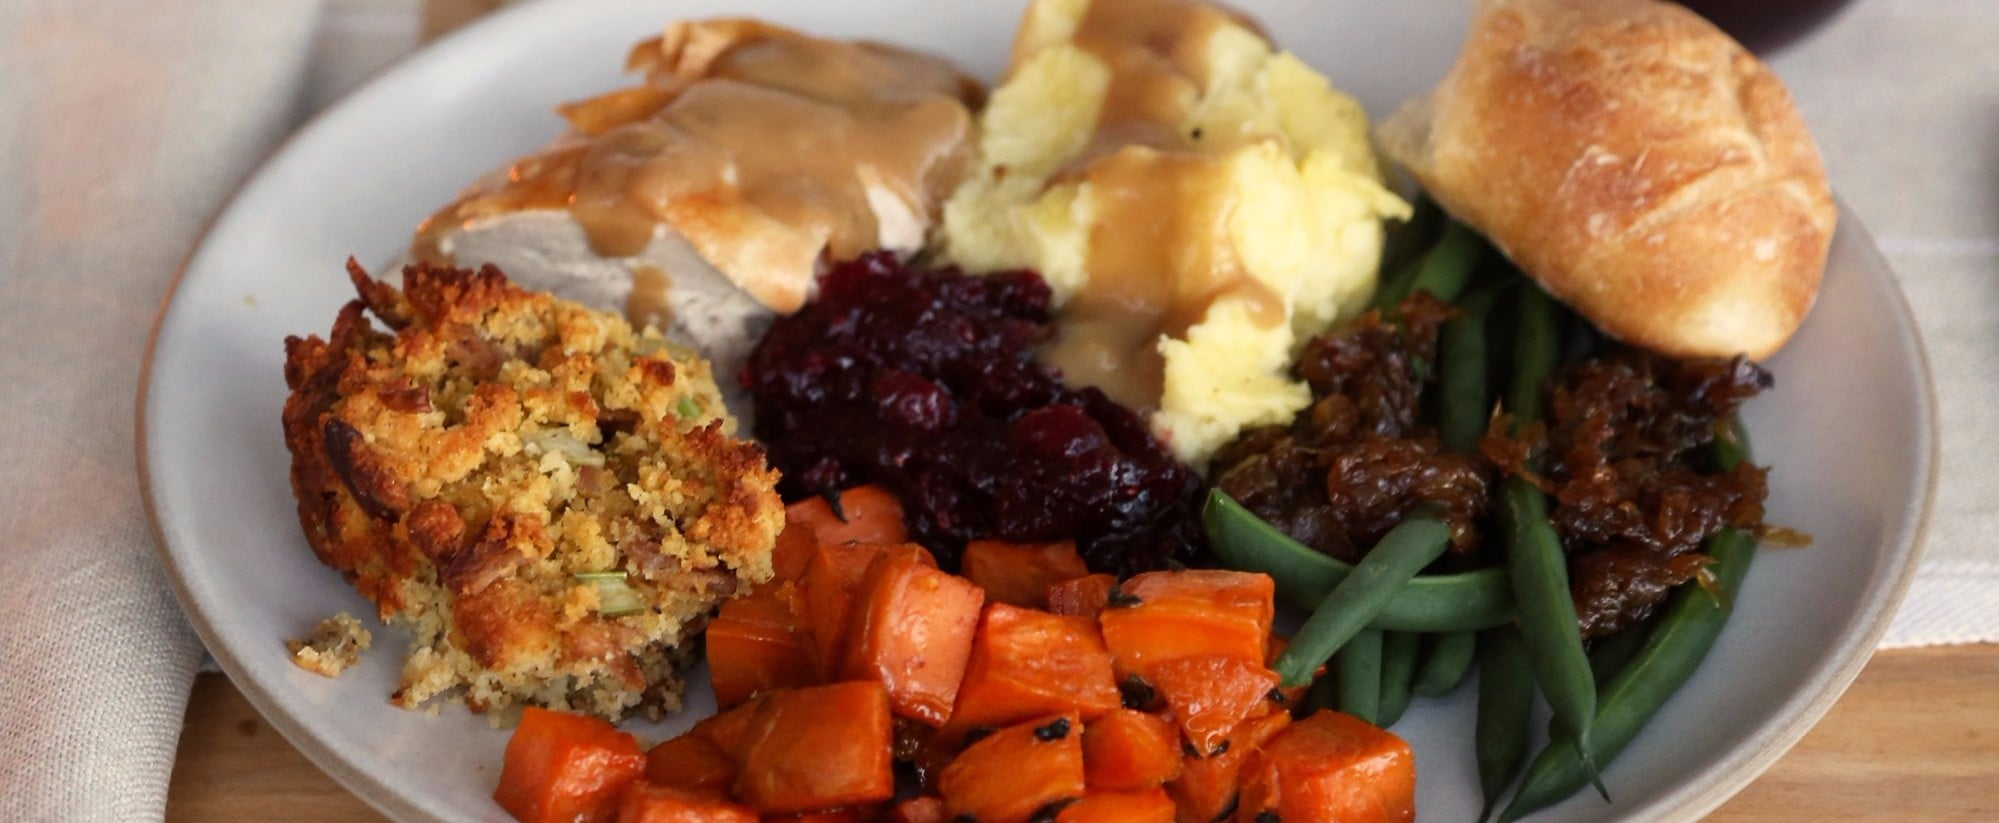 Thanksgiving Cheat Sheet: How Much Food to Make Per Person